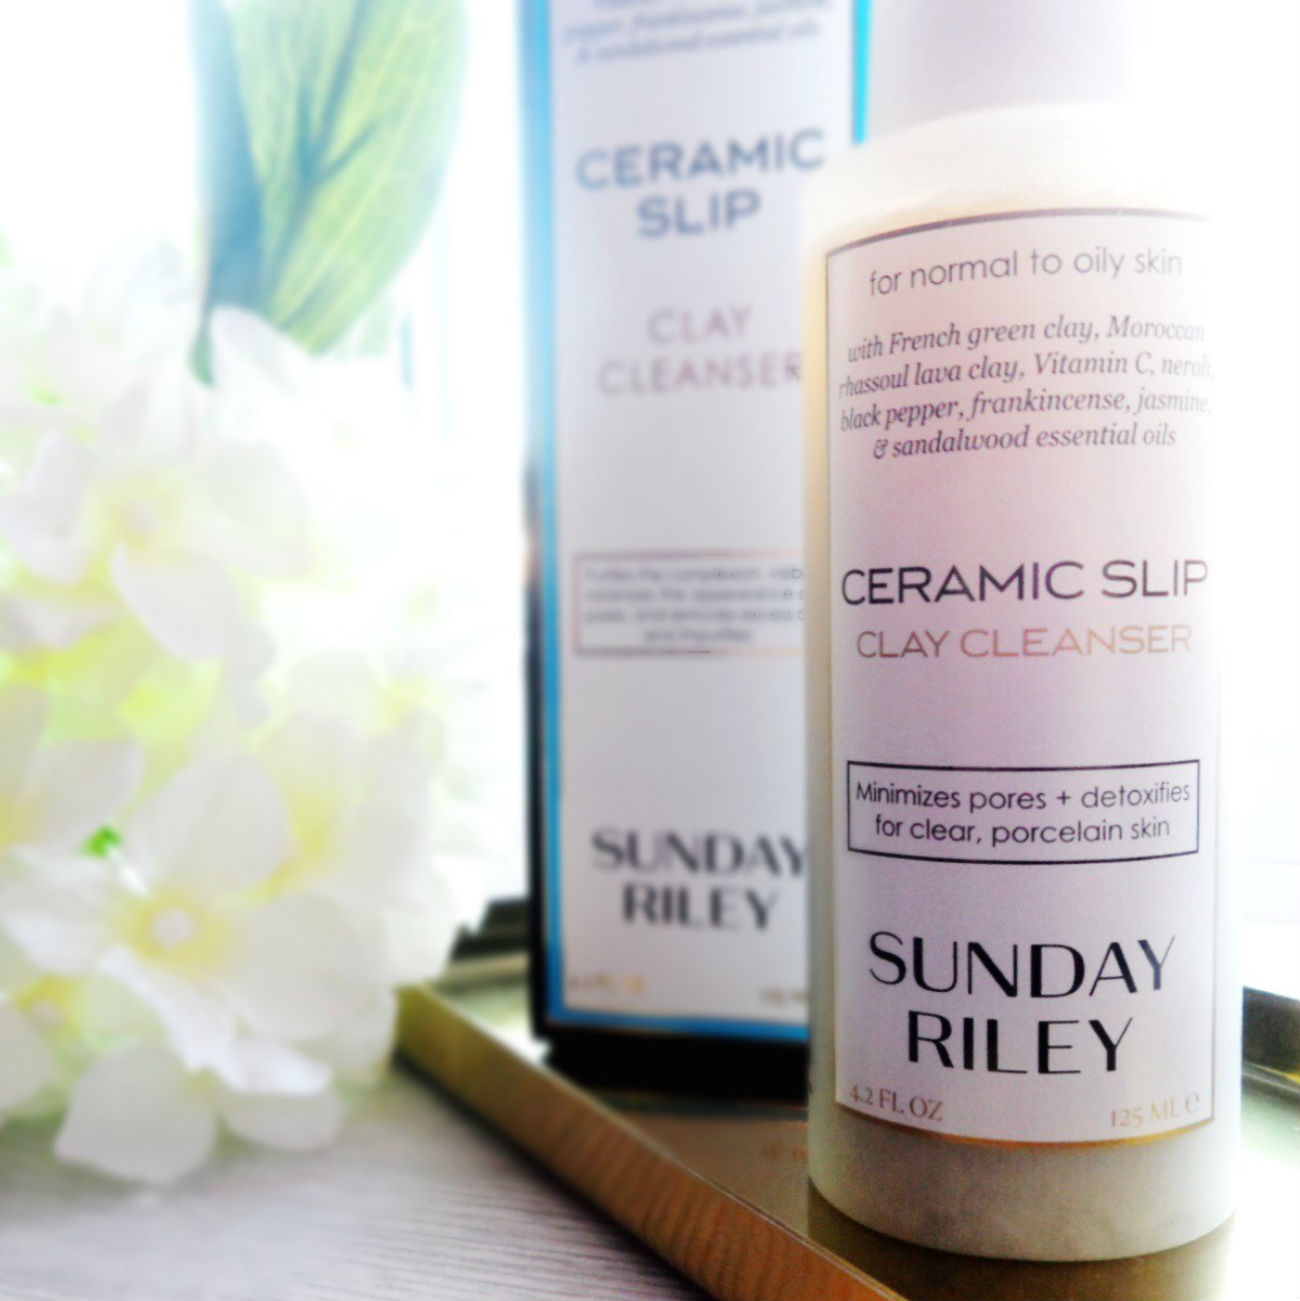 sunday riley clay cleanser